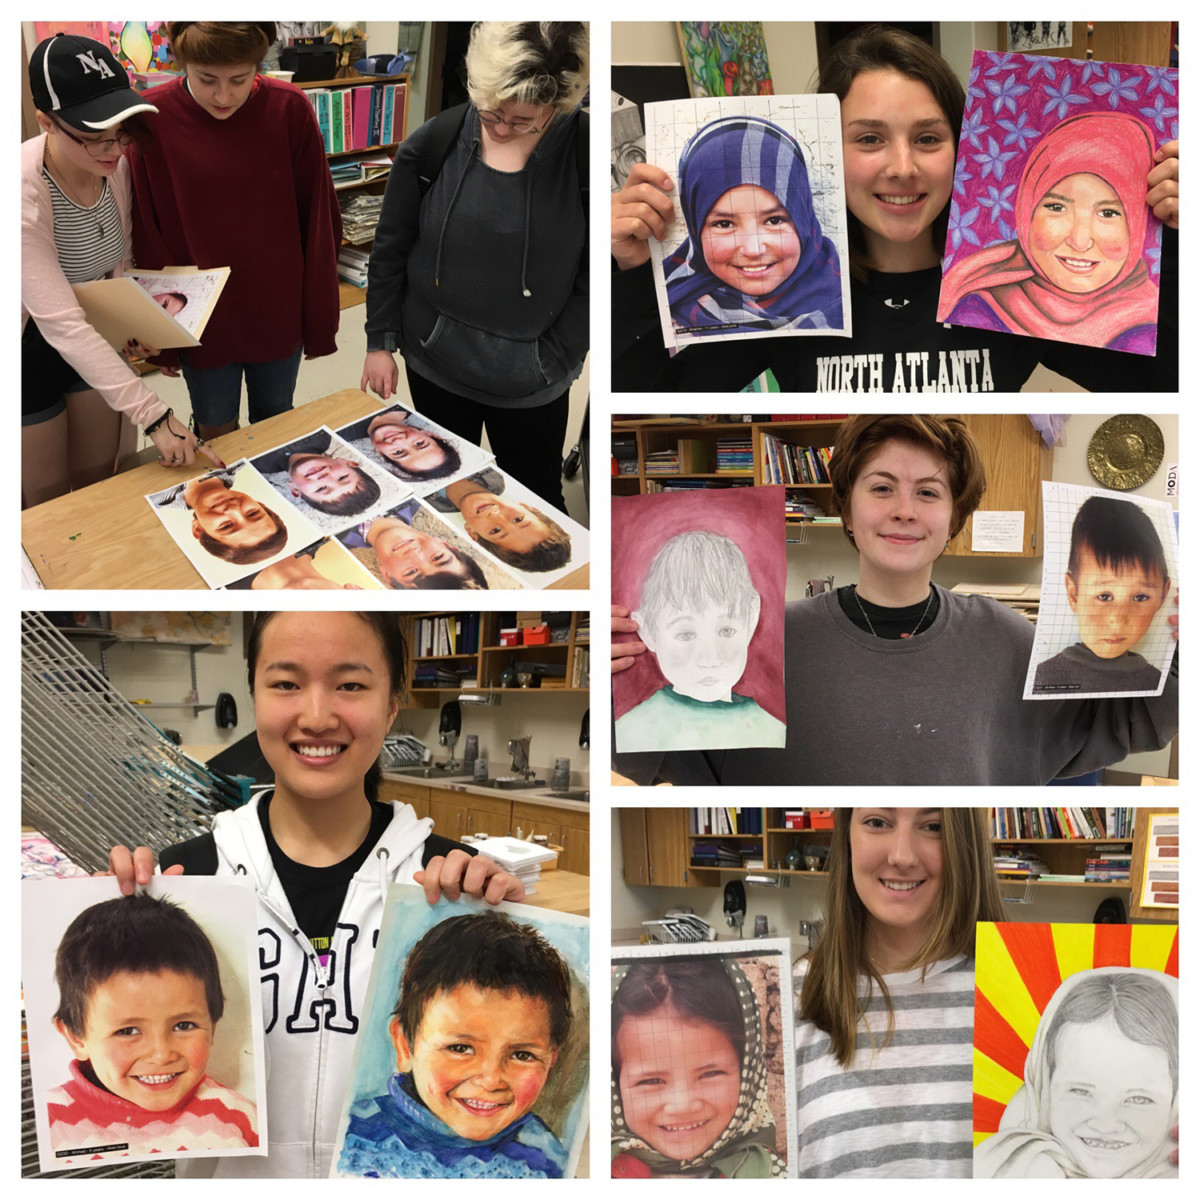 Healing Art: Under the Memory Project, North Atlanta art students recreated photos of children from war-torn areas and will send that art back to the children to give them reasons to smile and have hope.